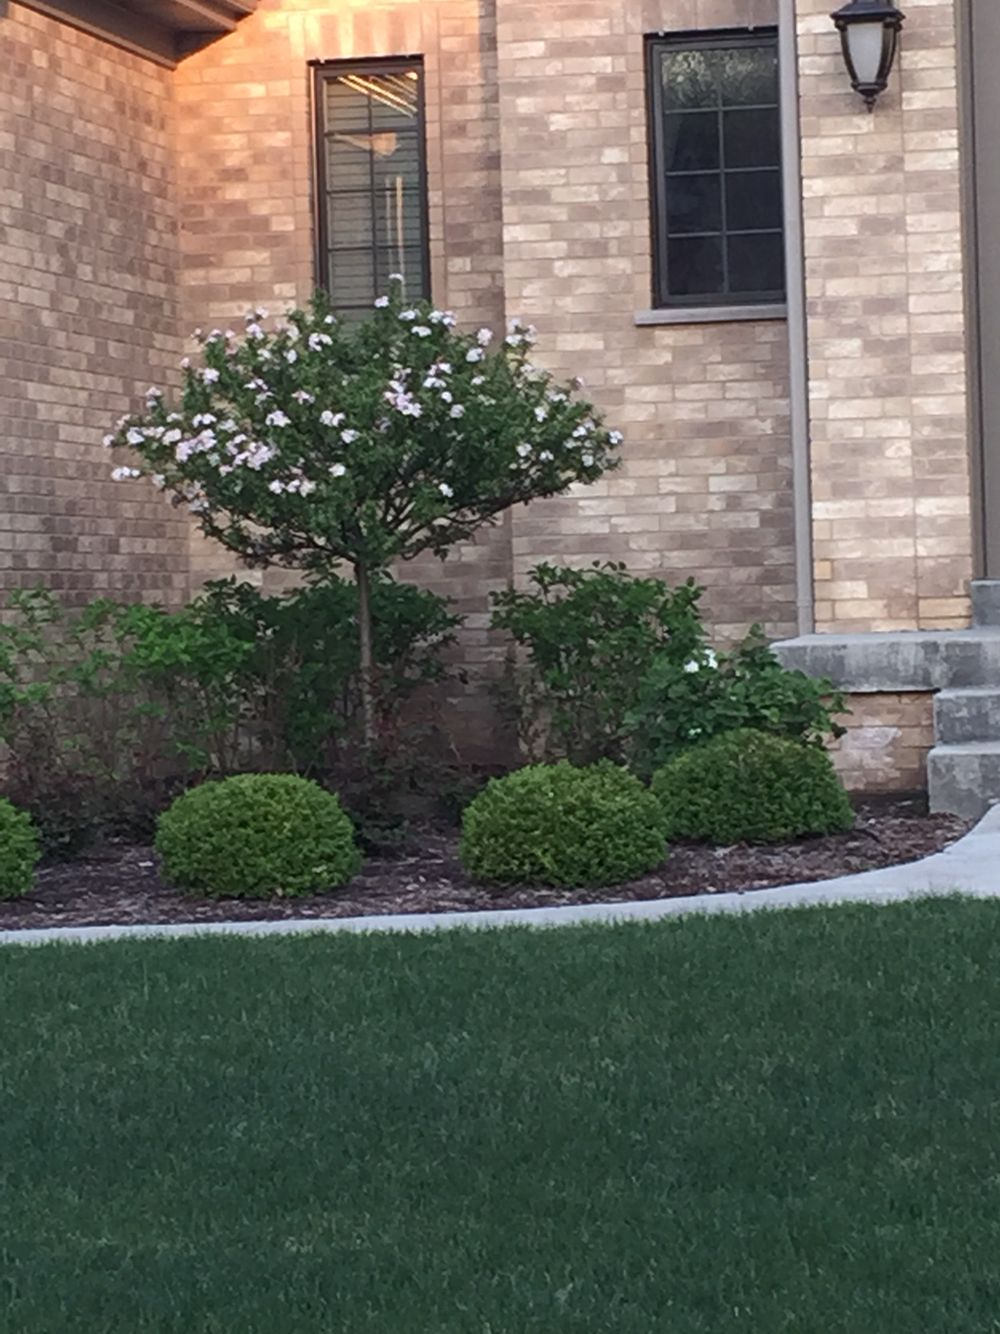 Dwarf tree front yard pinterest dwarf trees and trees for Small dwarf trees for landscaping